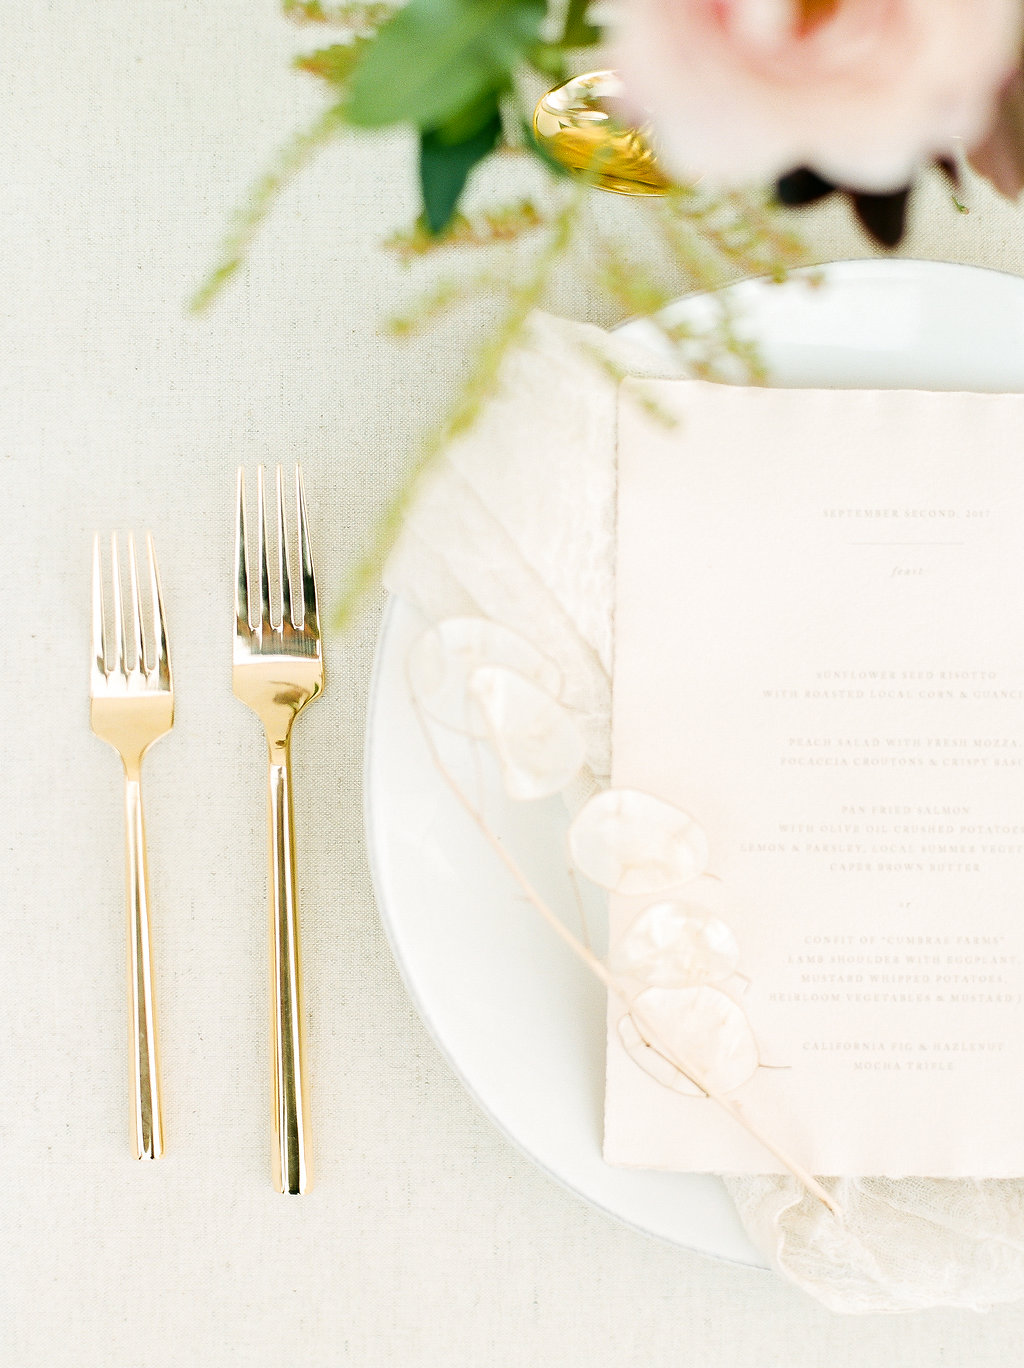 Spanish Mission Style Wedding Ideas Bridal Accessories Summer Flowers Finding Flora Wedding Sparrow Fine Art Flourish Calligraphy Invites Stationery San Juan Capistrano Tablescape Gold Forks